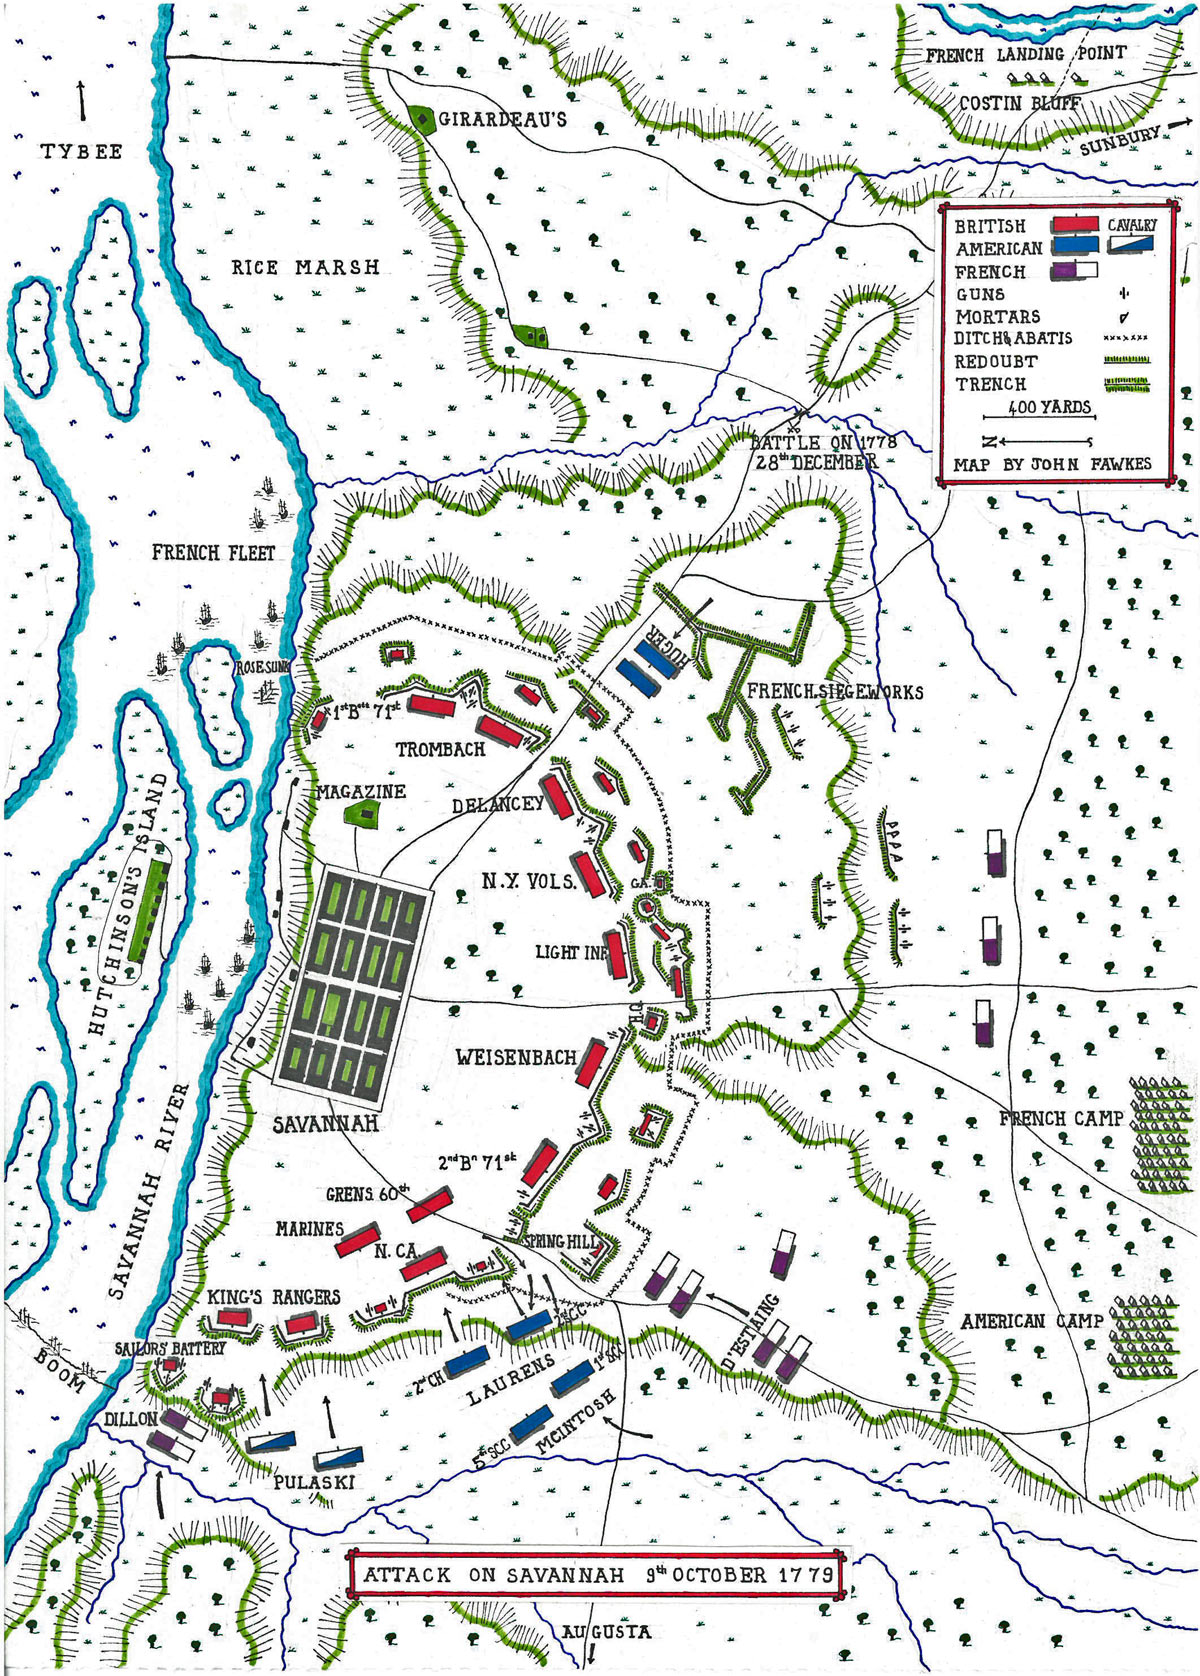 map of the siege of savannah and the attack on 9th october 1779 in the american